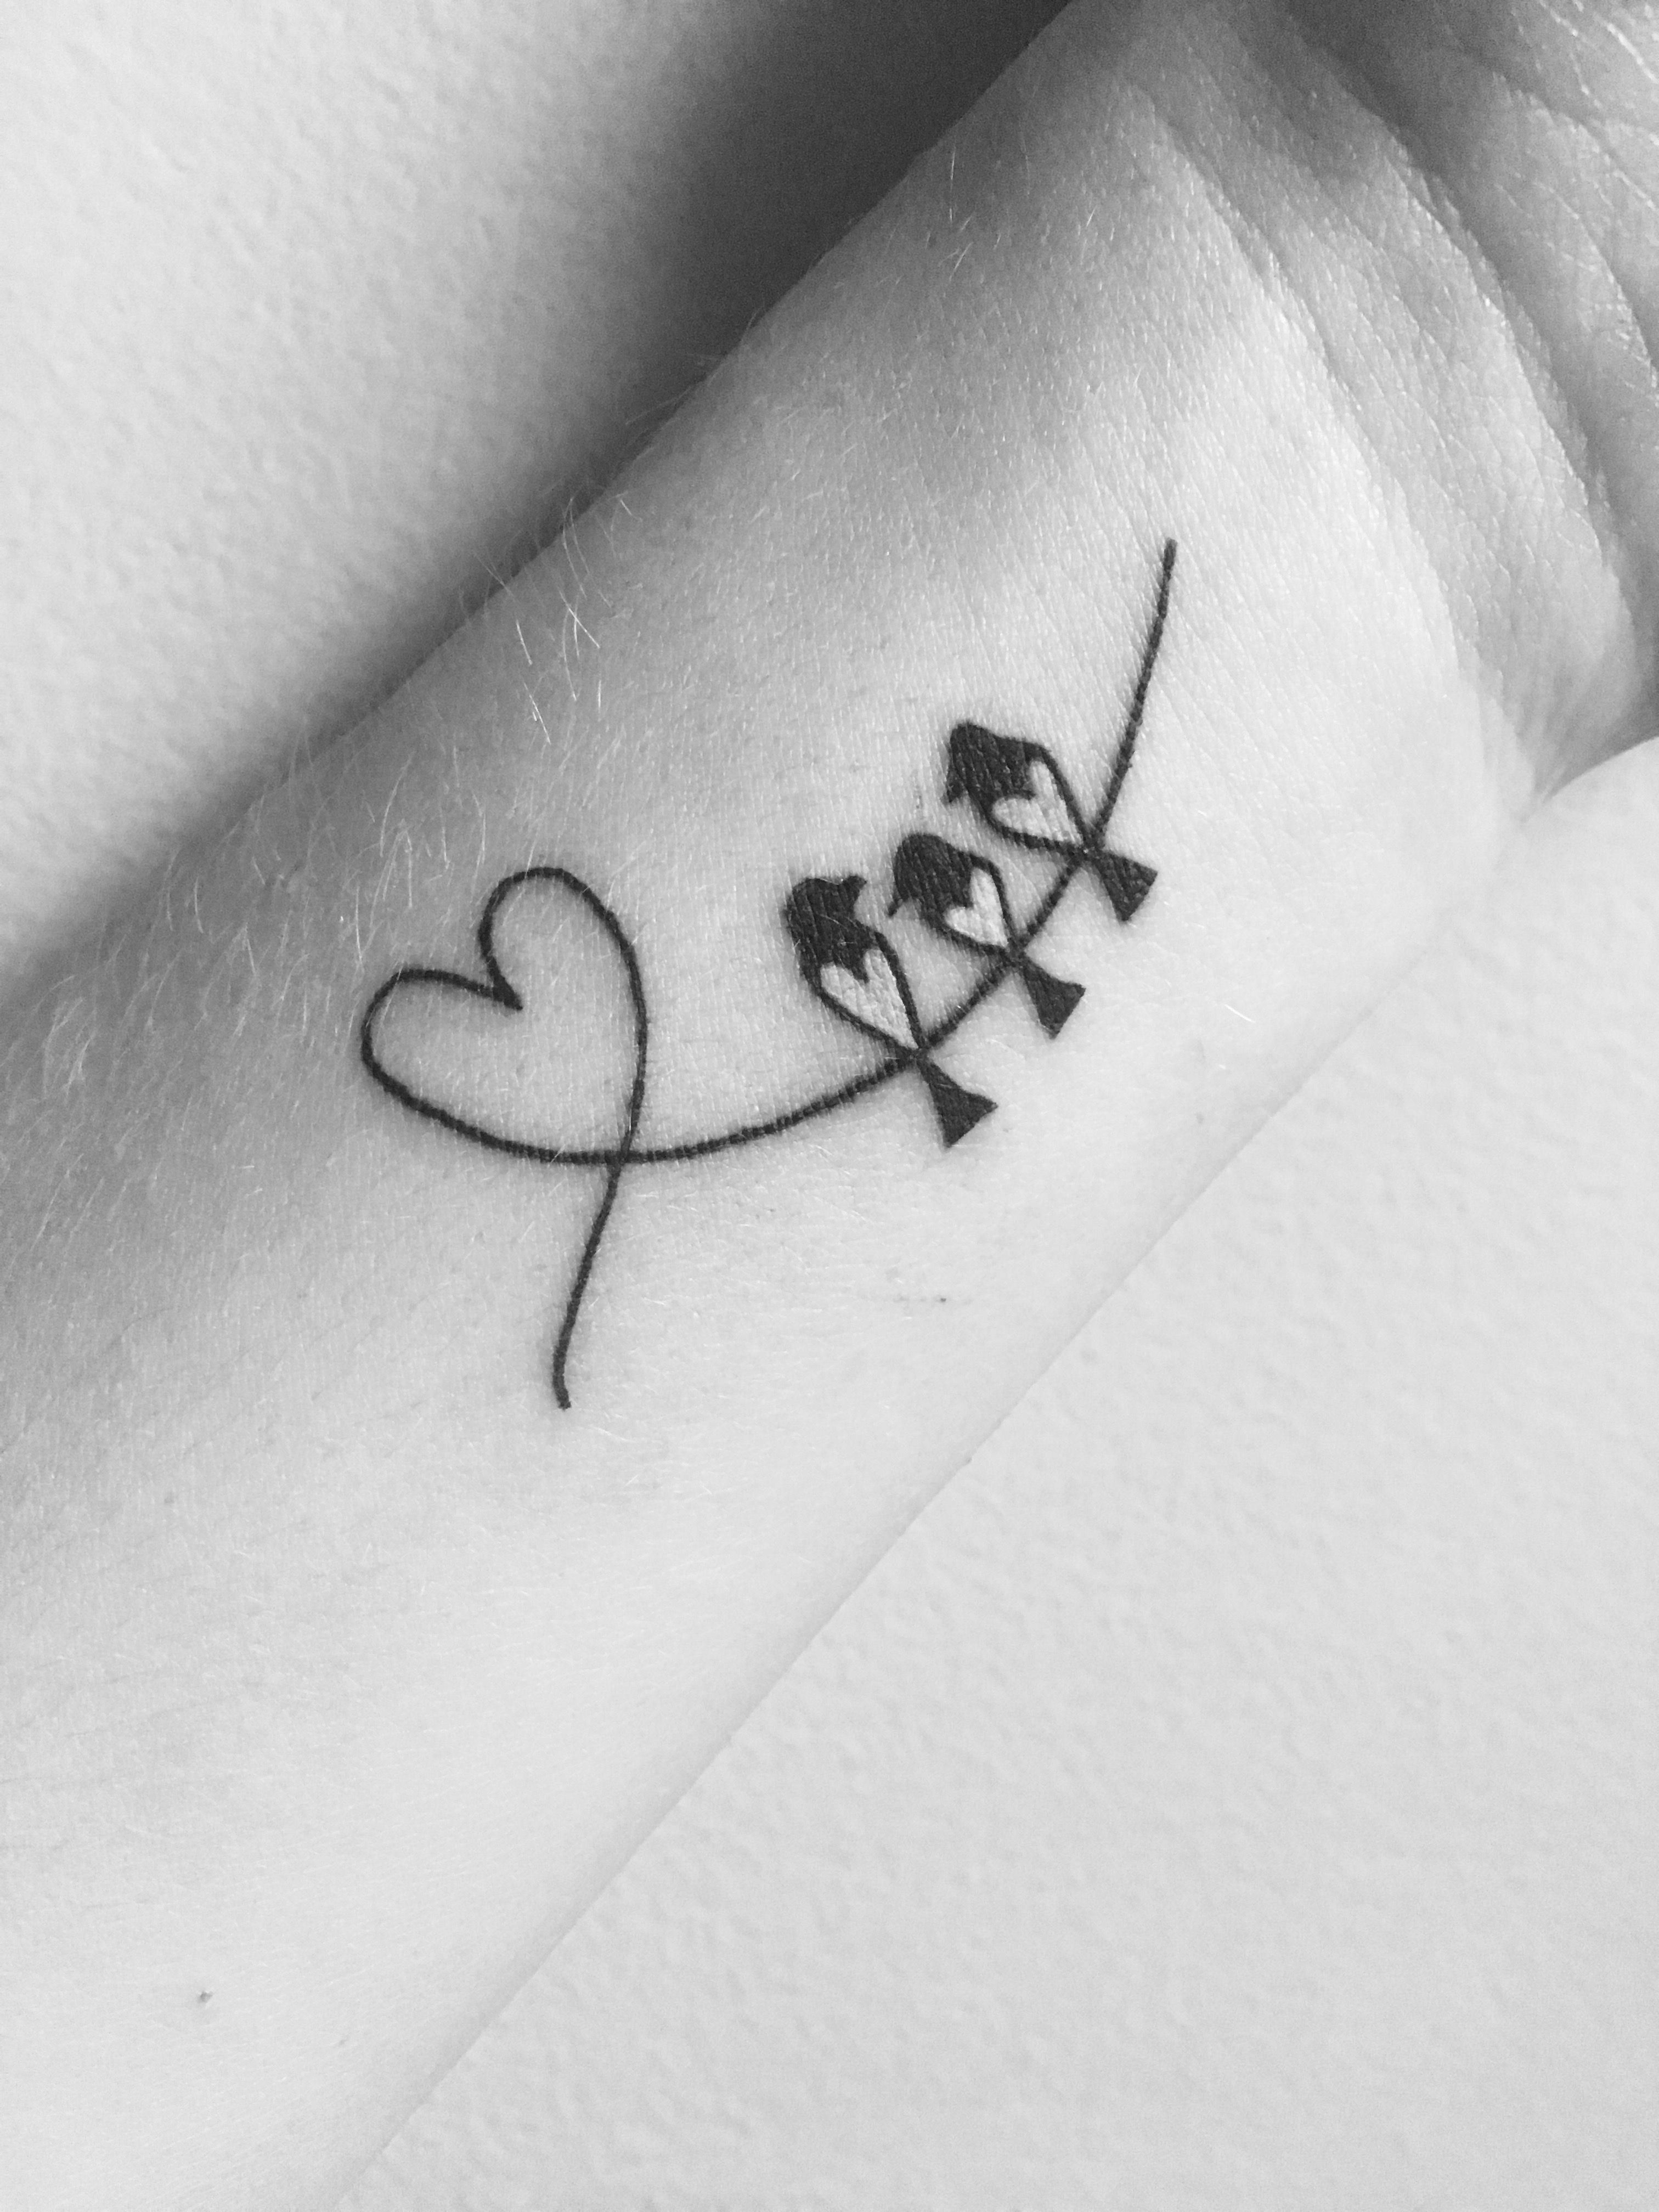 Small Tattoos With Kids Names : small, tattoos, names, Image, Result, Family, Tattoo, Ideas, #tattoosforwomensmall, Tattoos, Daughters,, Women, Small,